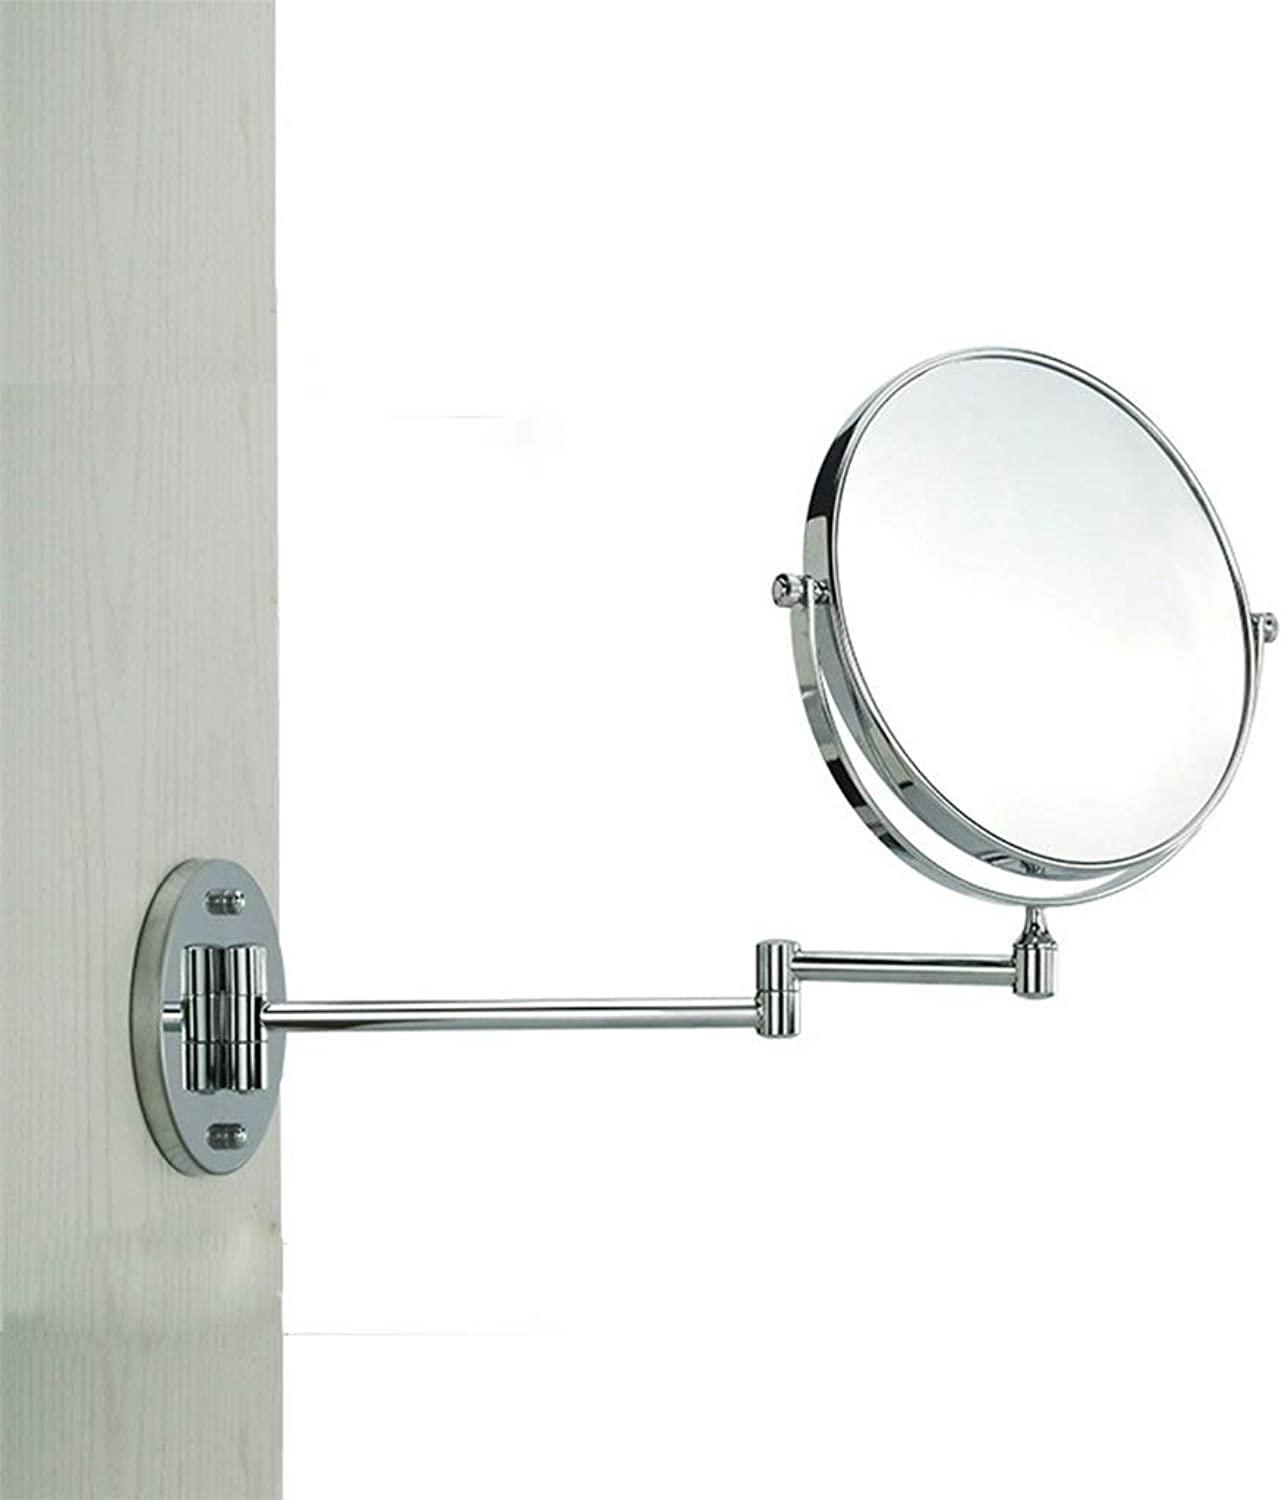 SMC Mirror Wall-Mounted Simple Round Portable Adjustable Folding Mirror Portable Double-Sided Vanity Mirror (color   5 Times)